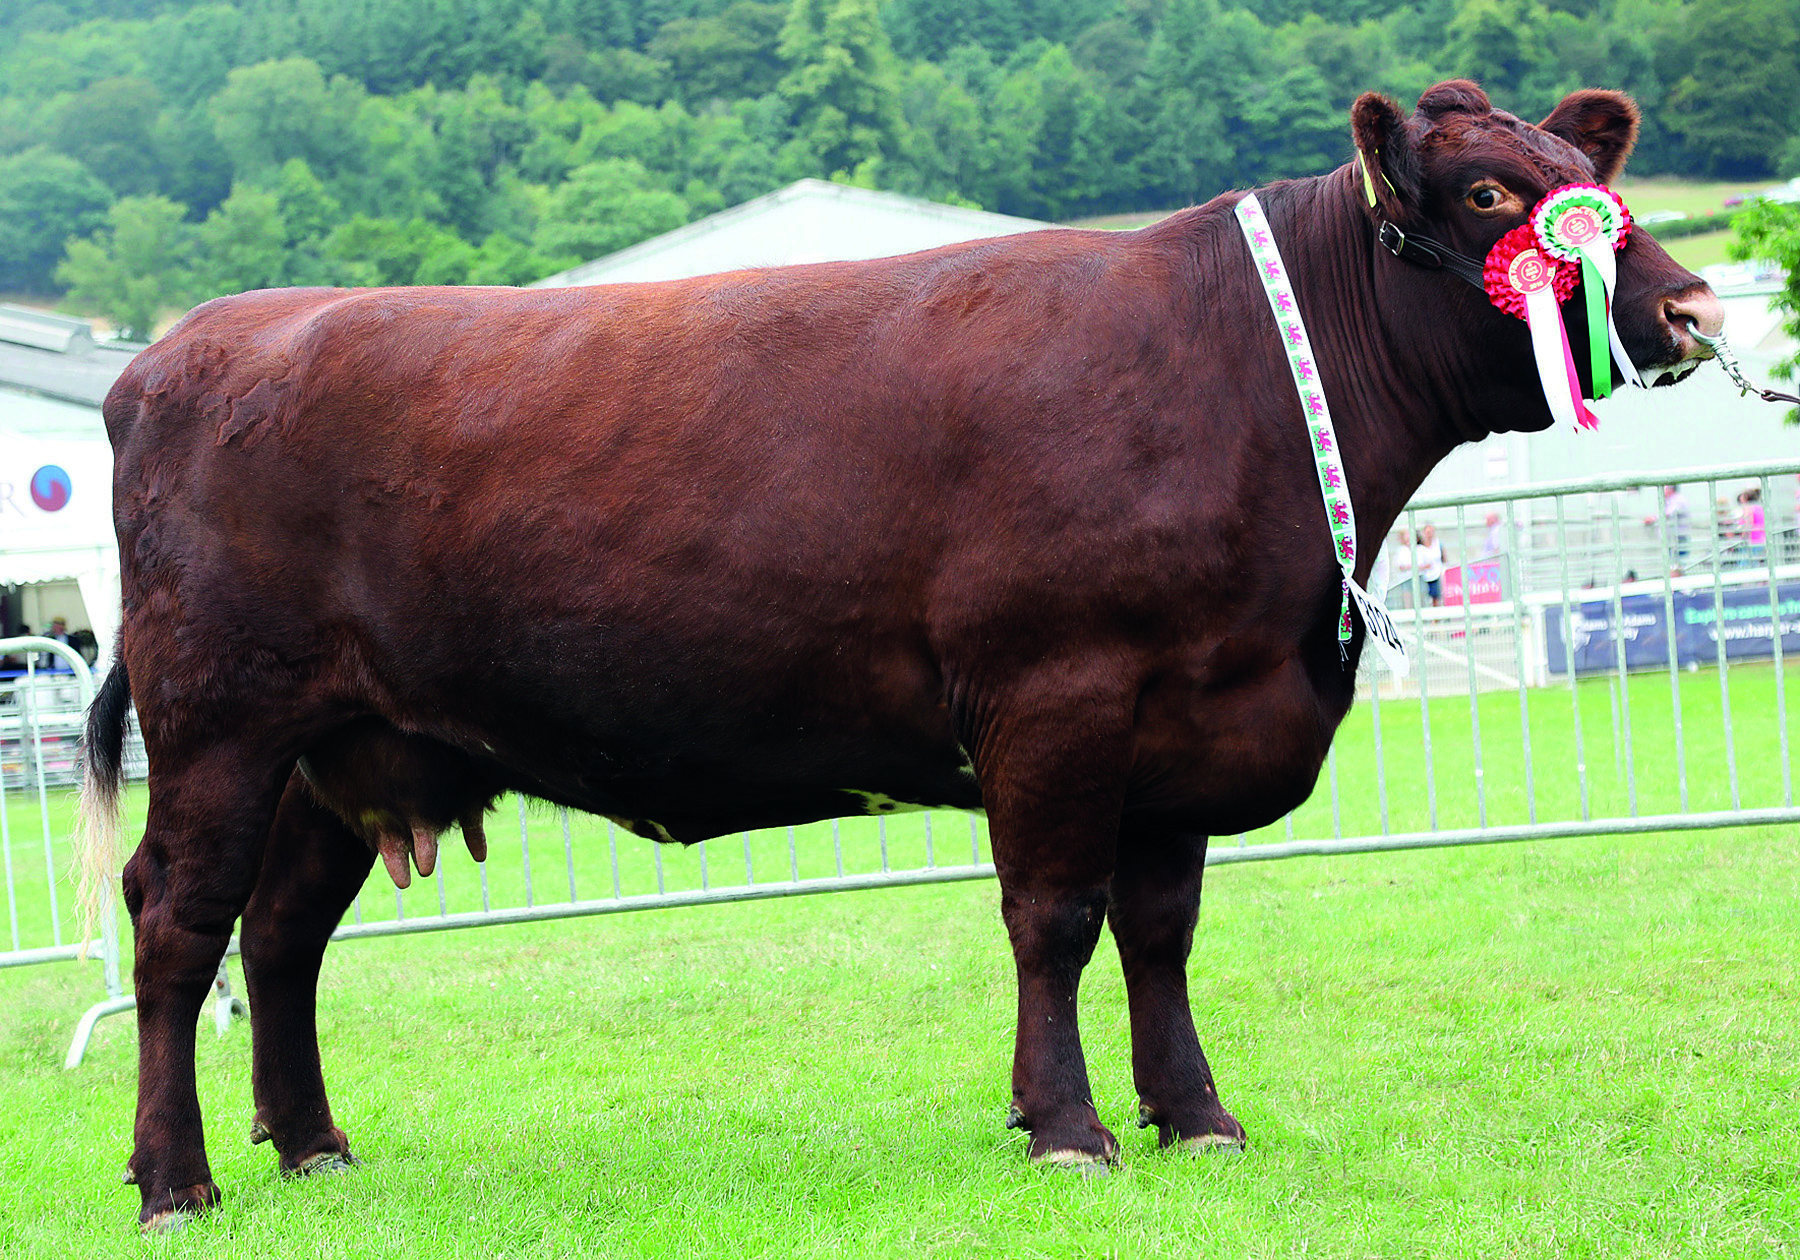 The Royal Welsh Show 2018